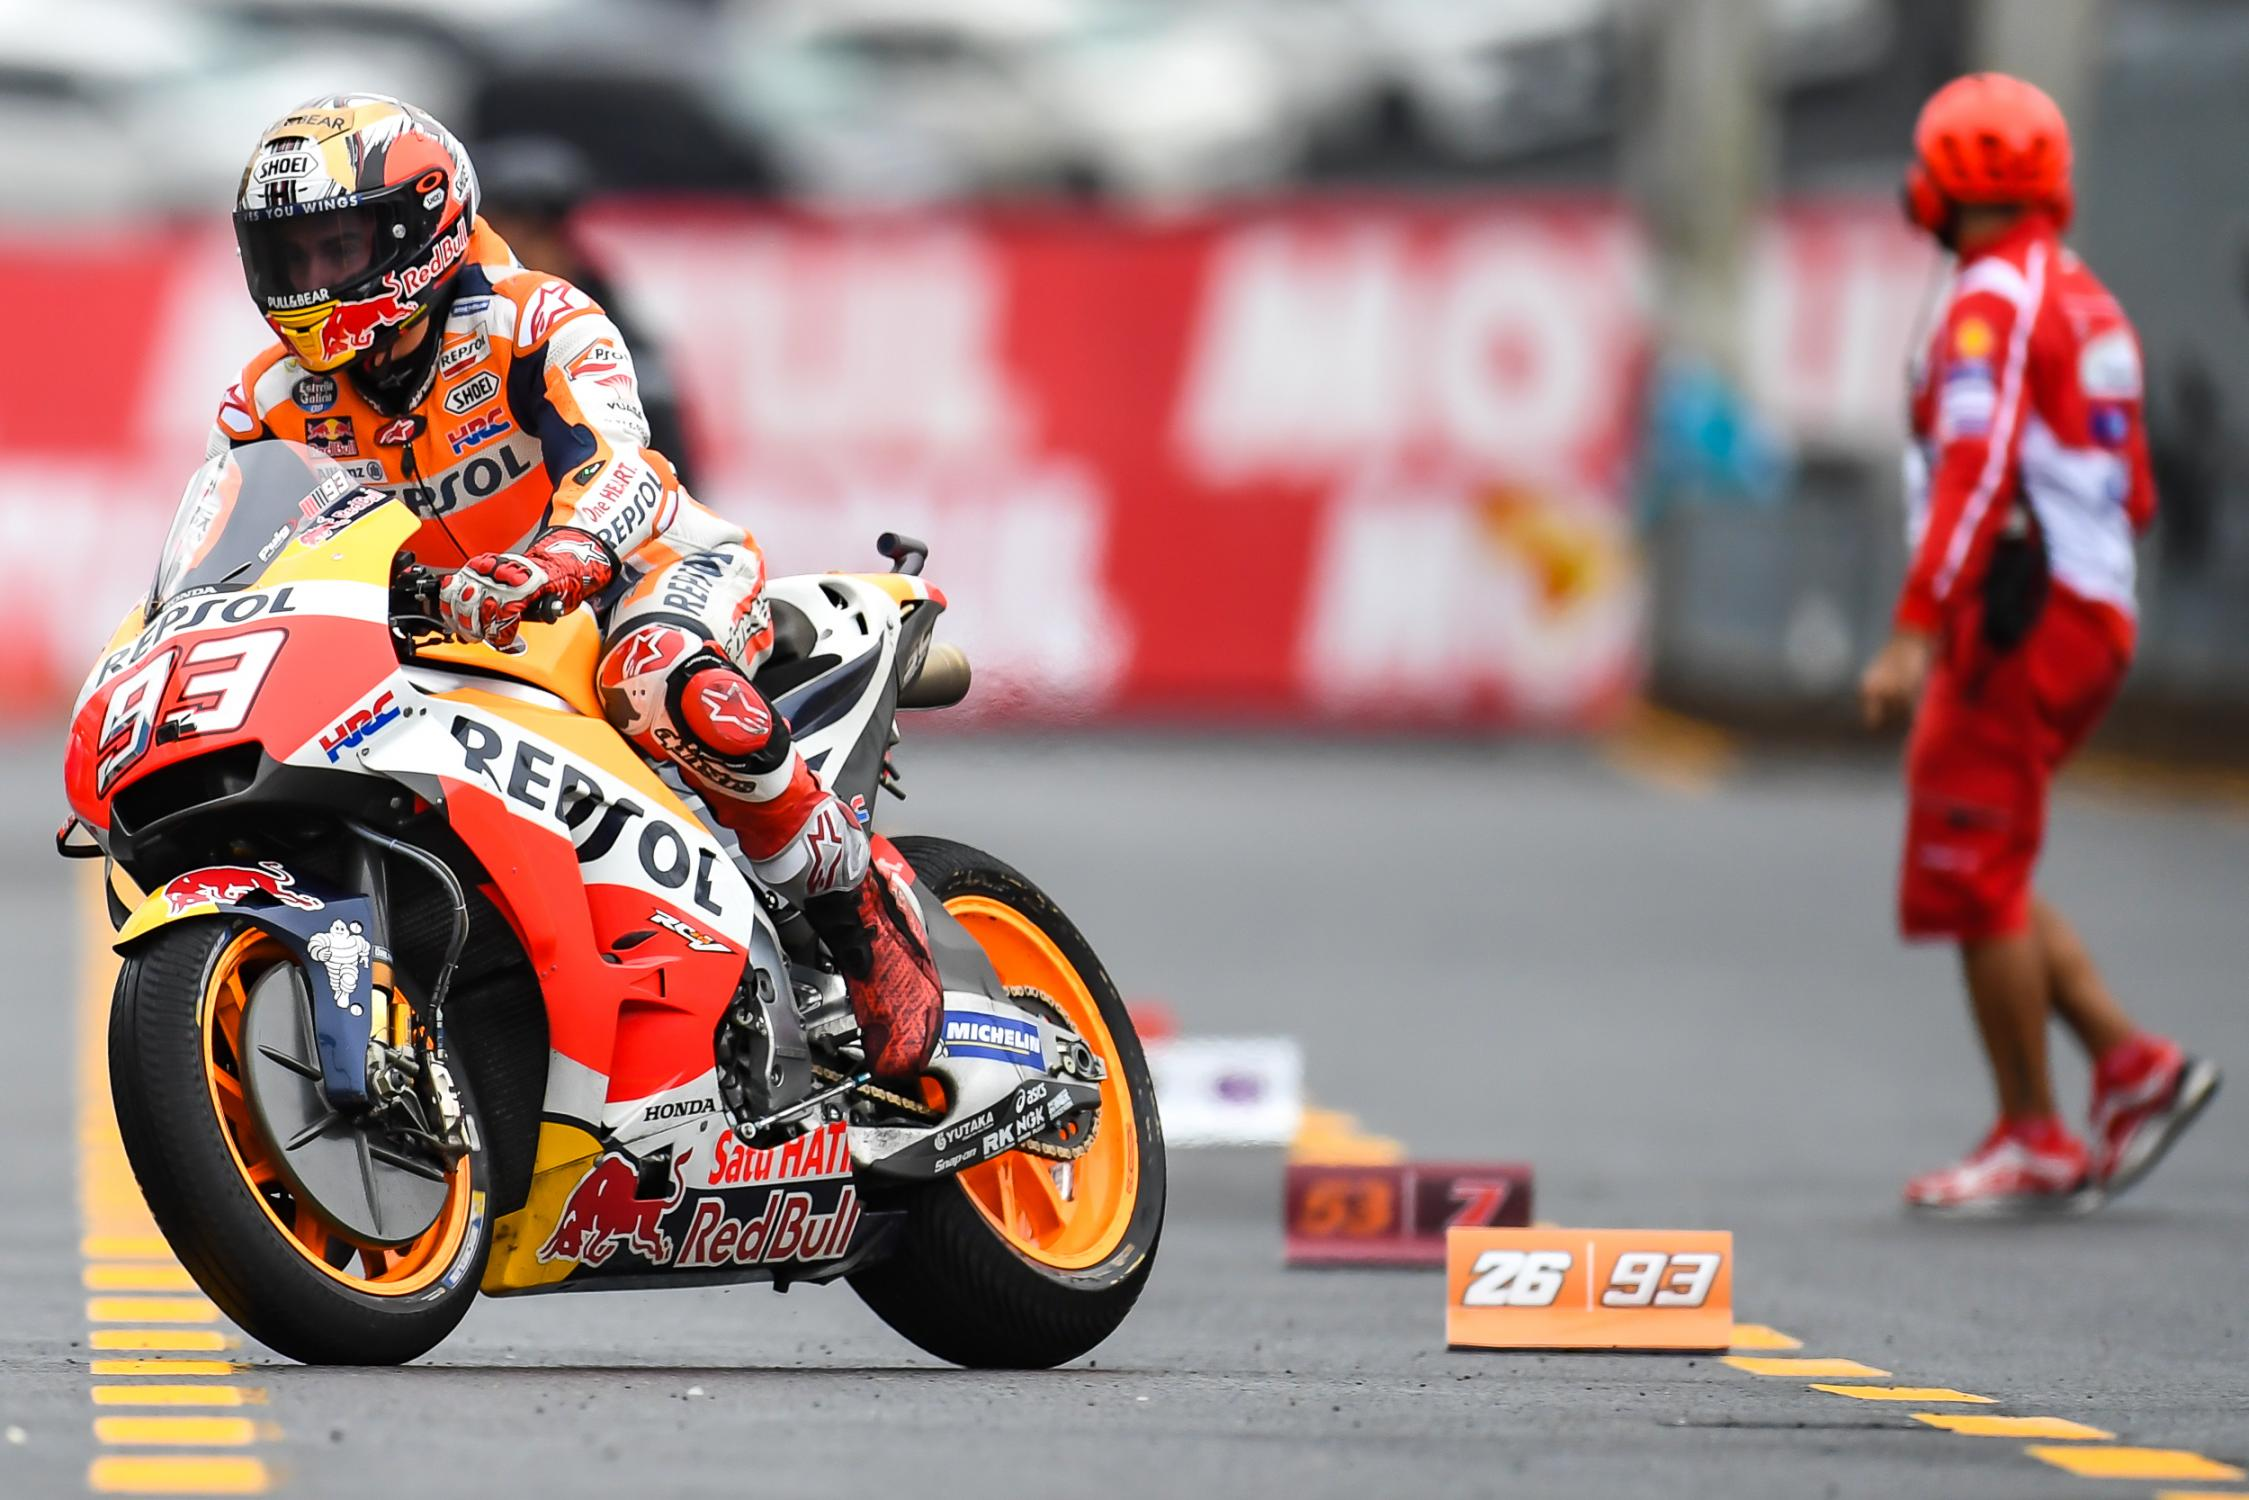 93-marc-marquez-espdsc_2042.jpg.gallery_full_top_fullscreen.jpg